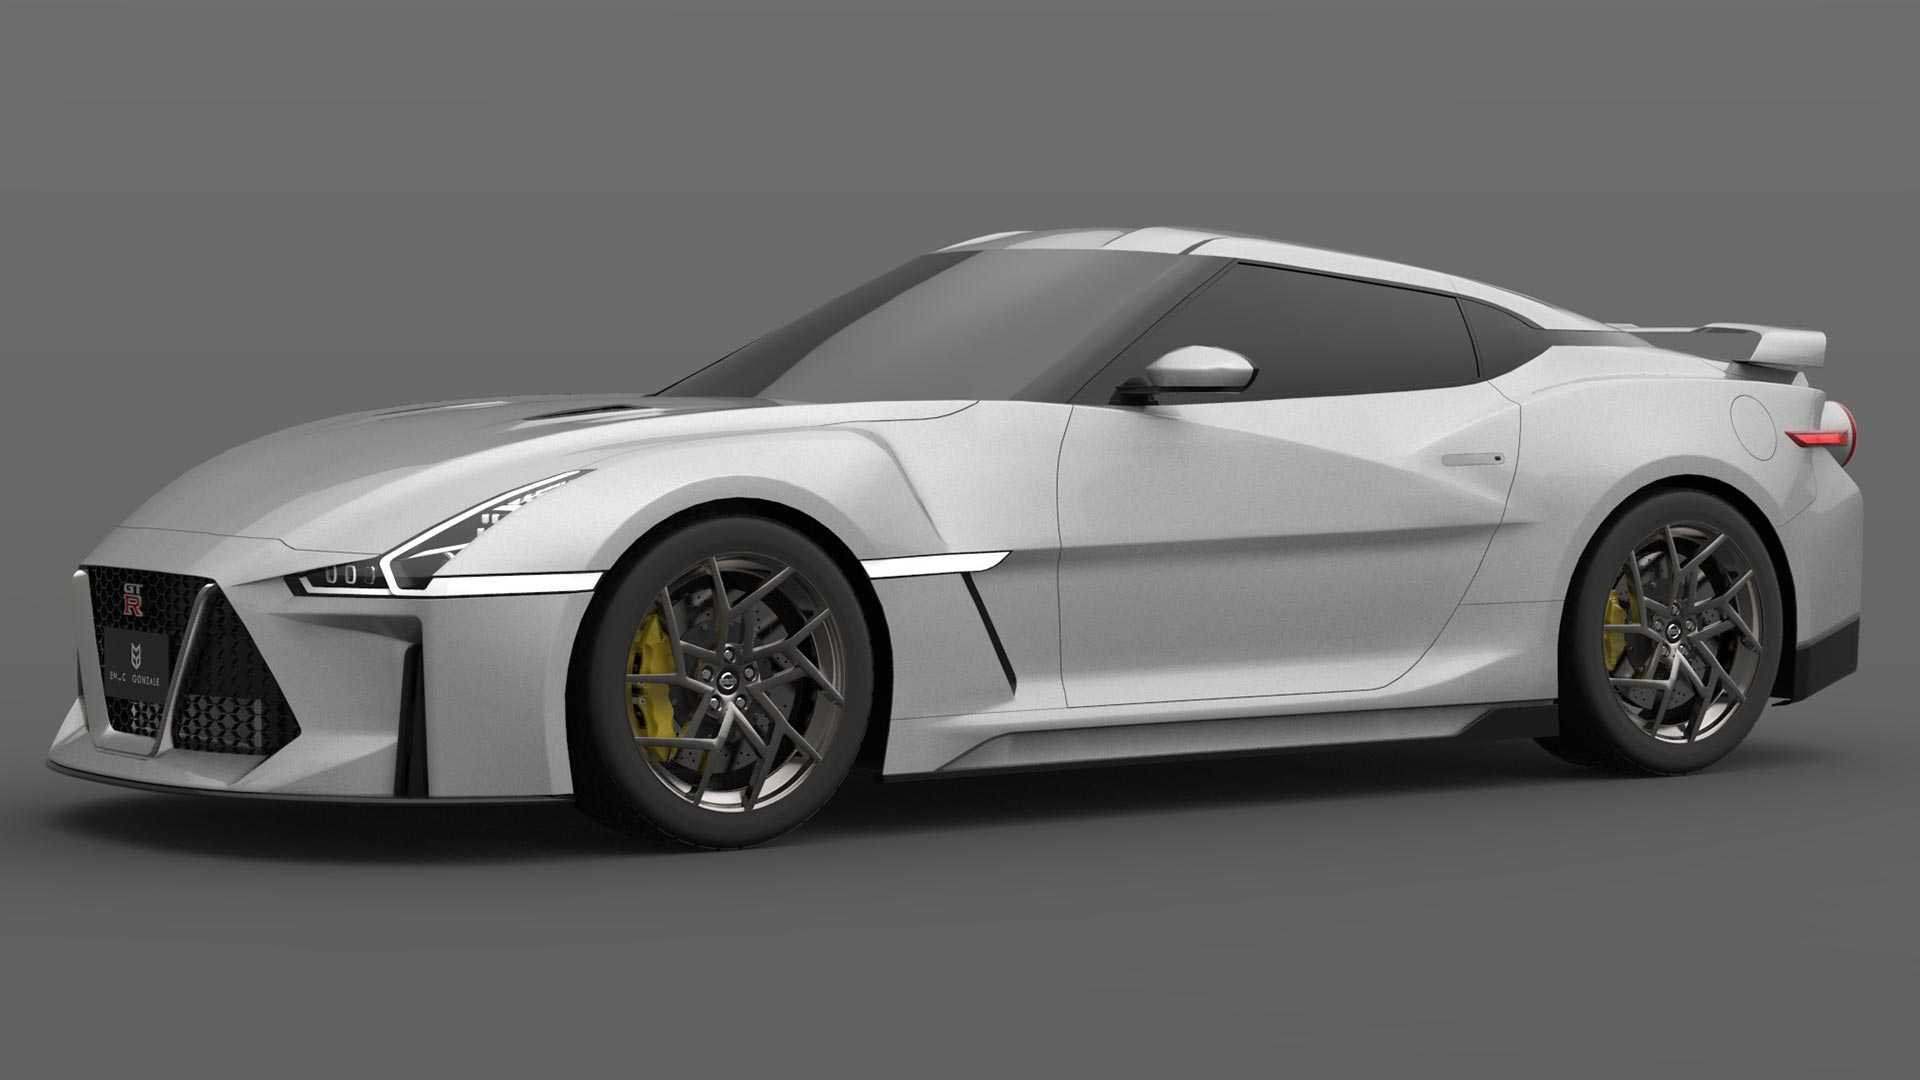 Next Gen Gtr >> Next Gen Nissan Gt R Render Gives Godzilla Sharper Teeth